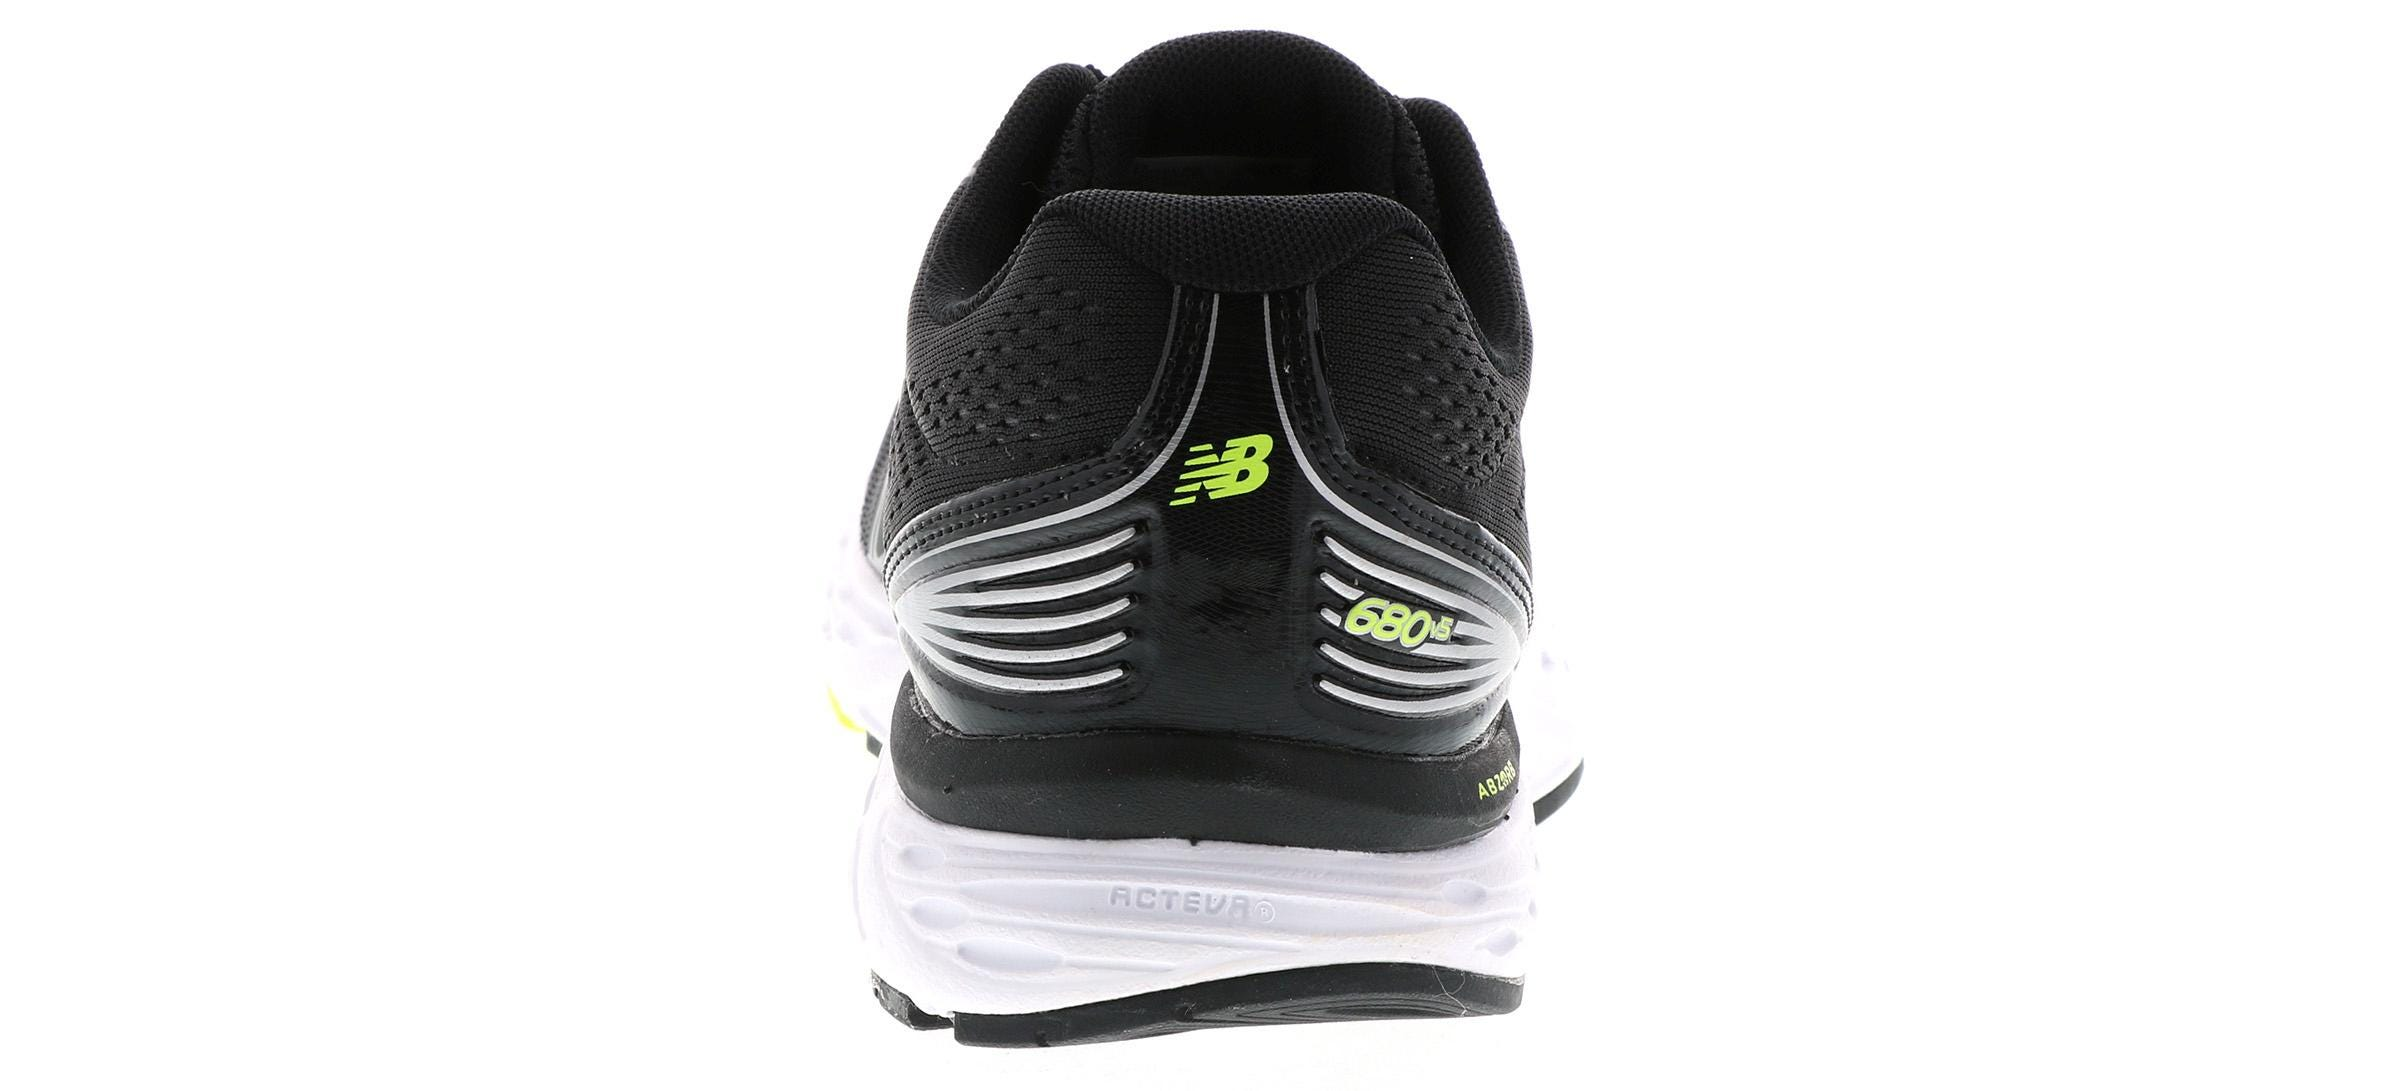 Men's New Balance 680 Tech Ride Black | Shoe Sensation